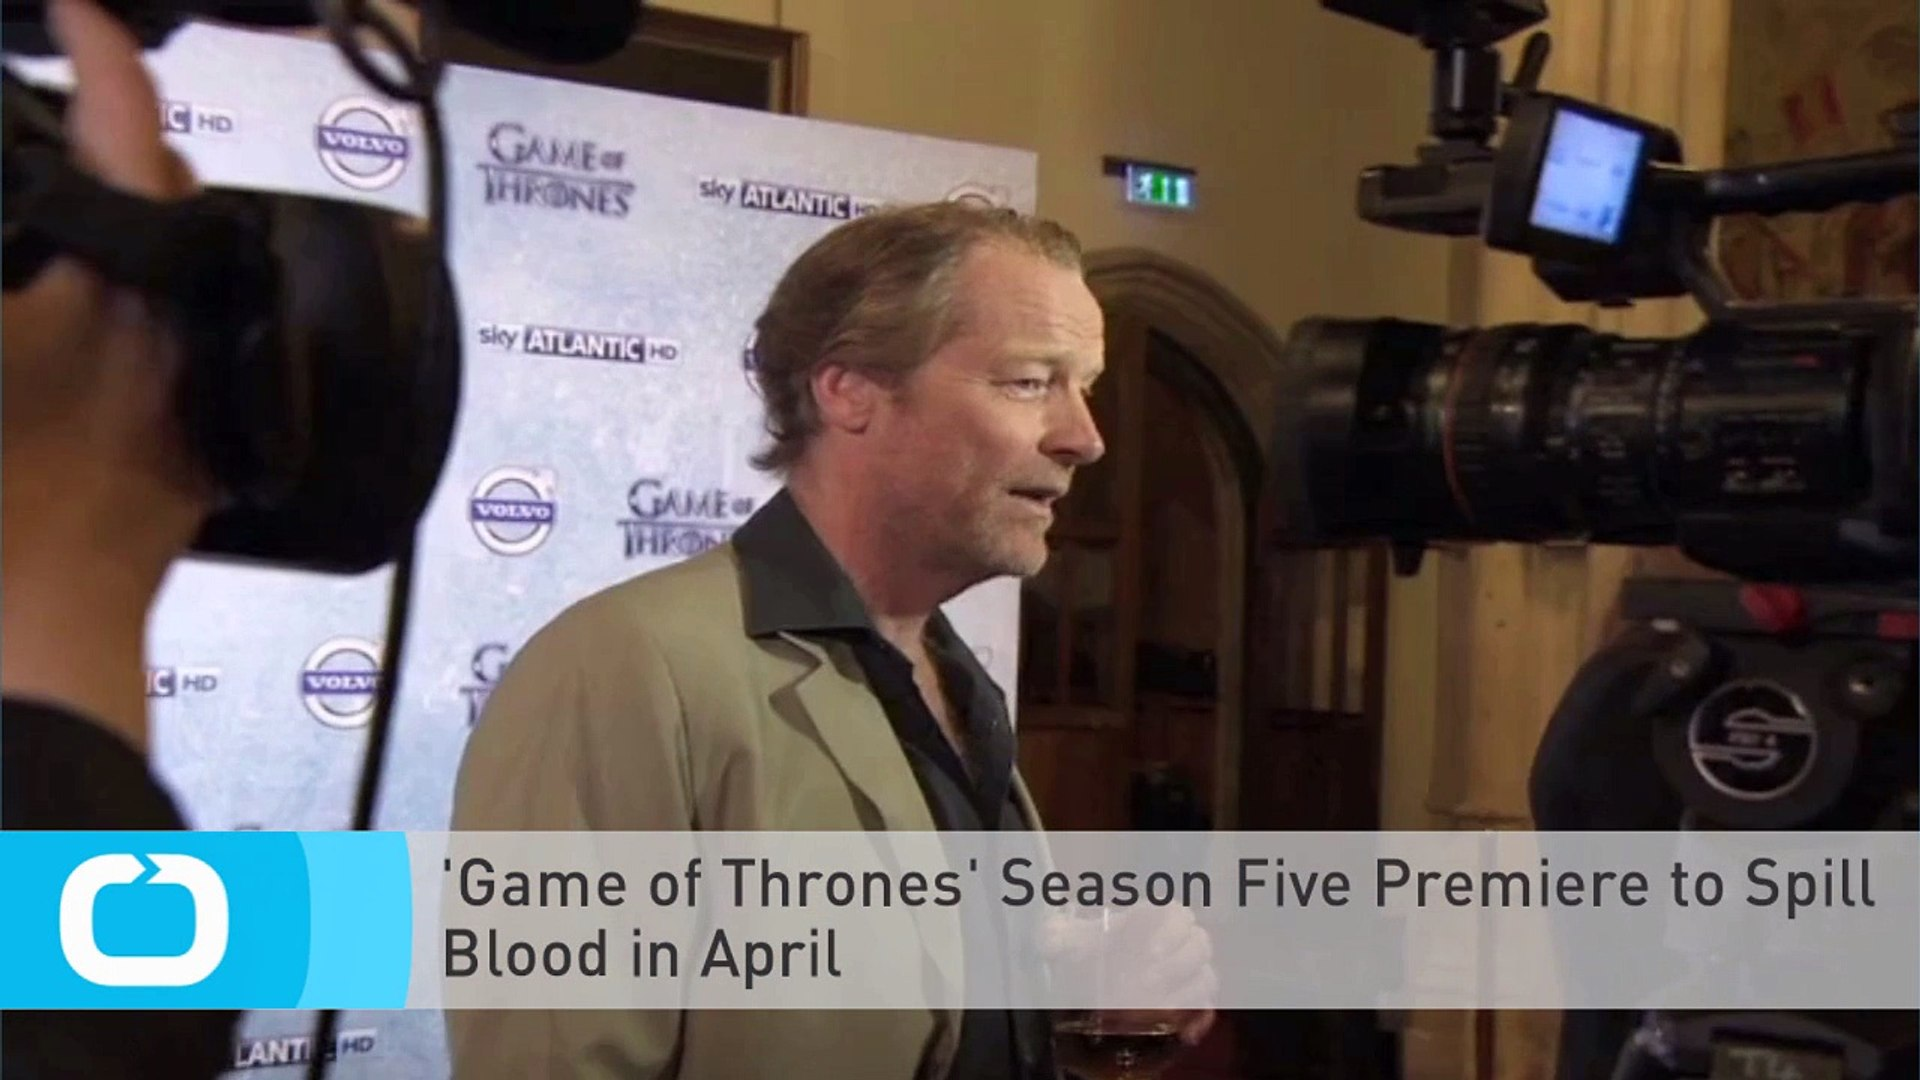 'Game of Thrones' Season Five Premiere to Spill Blood in April